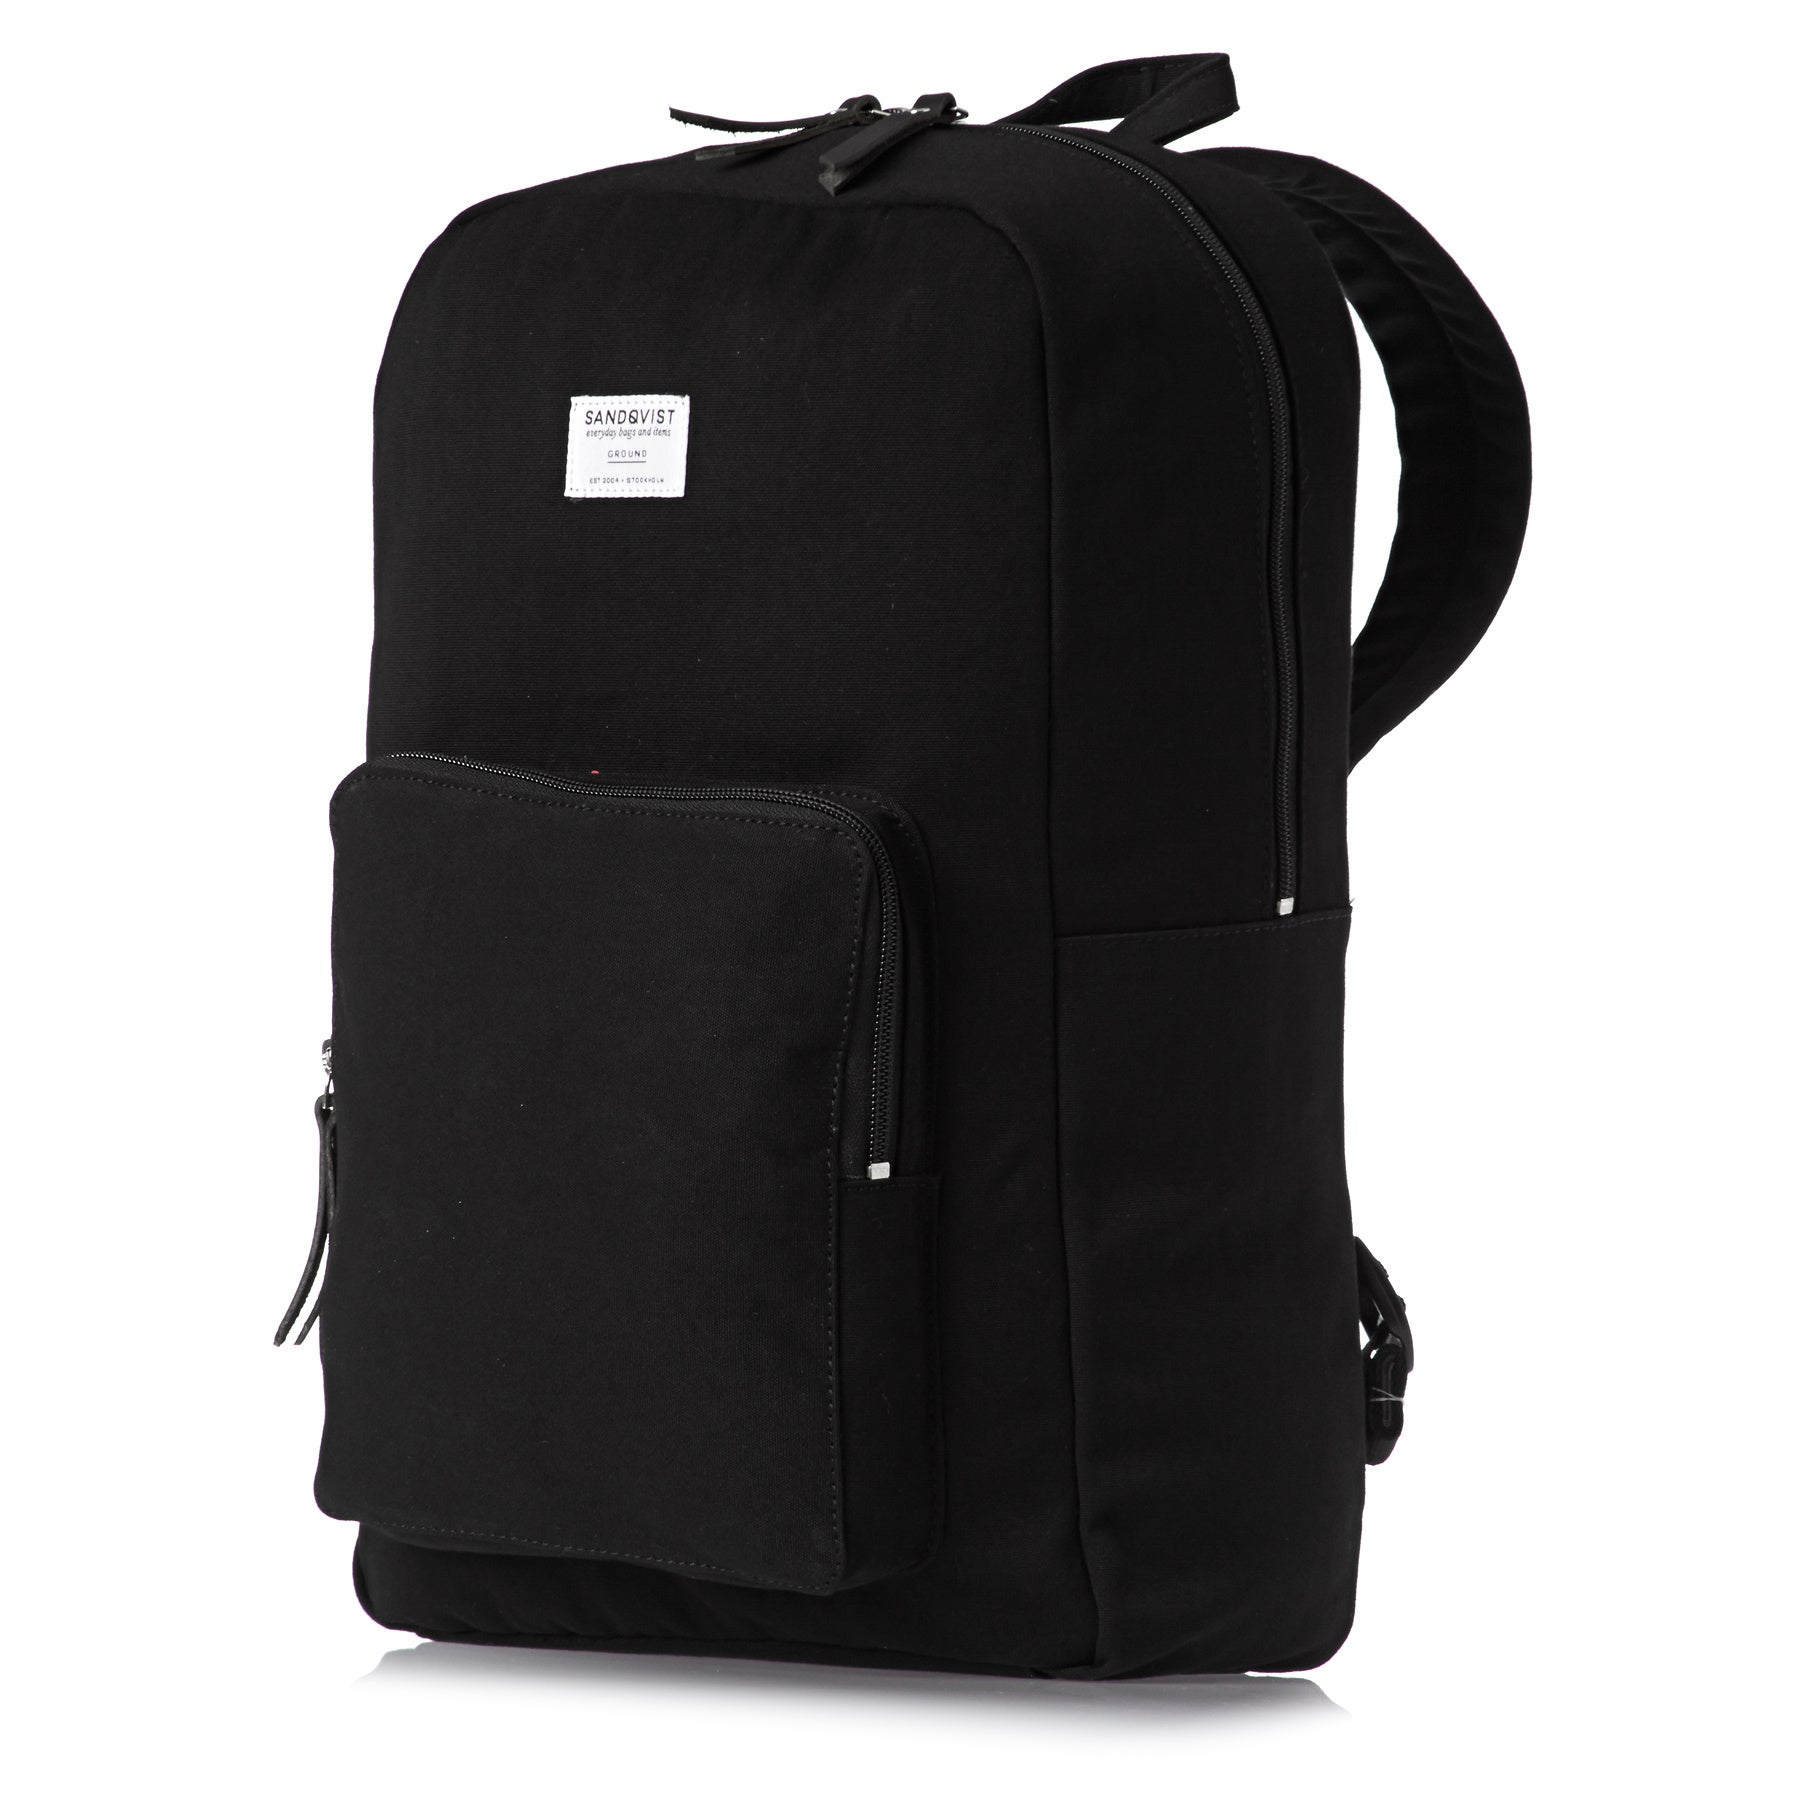 Sandqvist And Options Free Available Accessories Delivery Backpacks OBUq4OnS